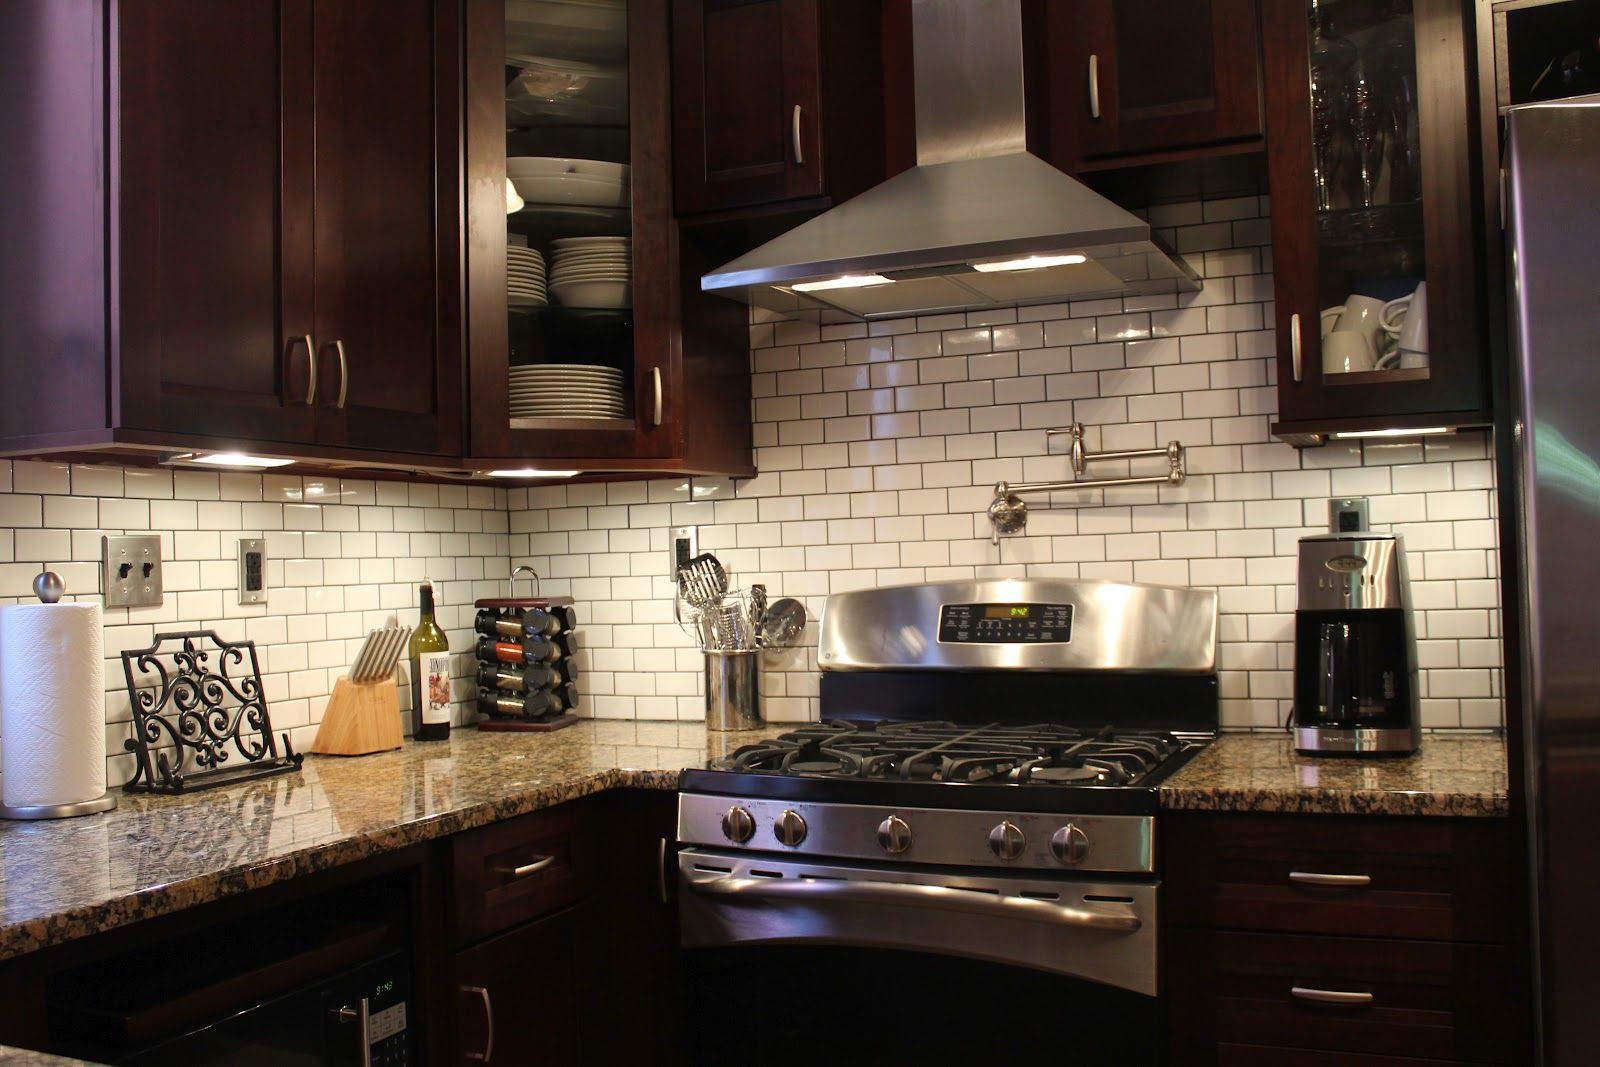 Image result for gold and gray granite with cherry cabinets white image result for gold and gray granite with cherry cabinets white backsplash dailygadgetfo Choice Image